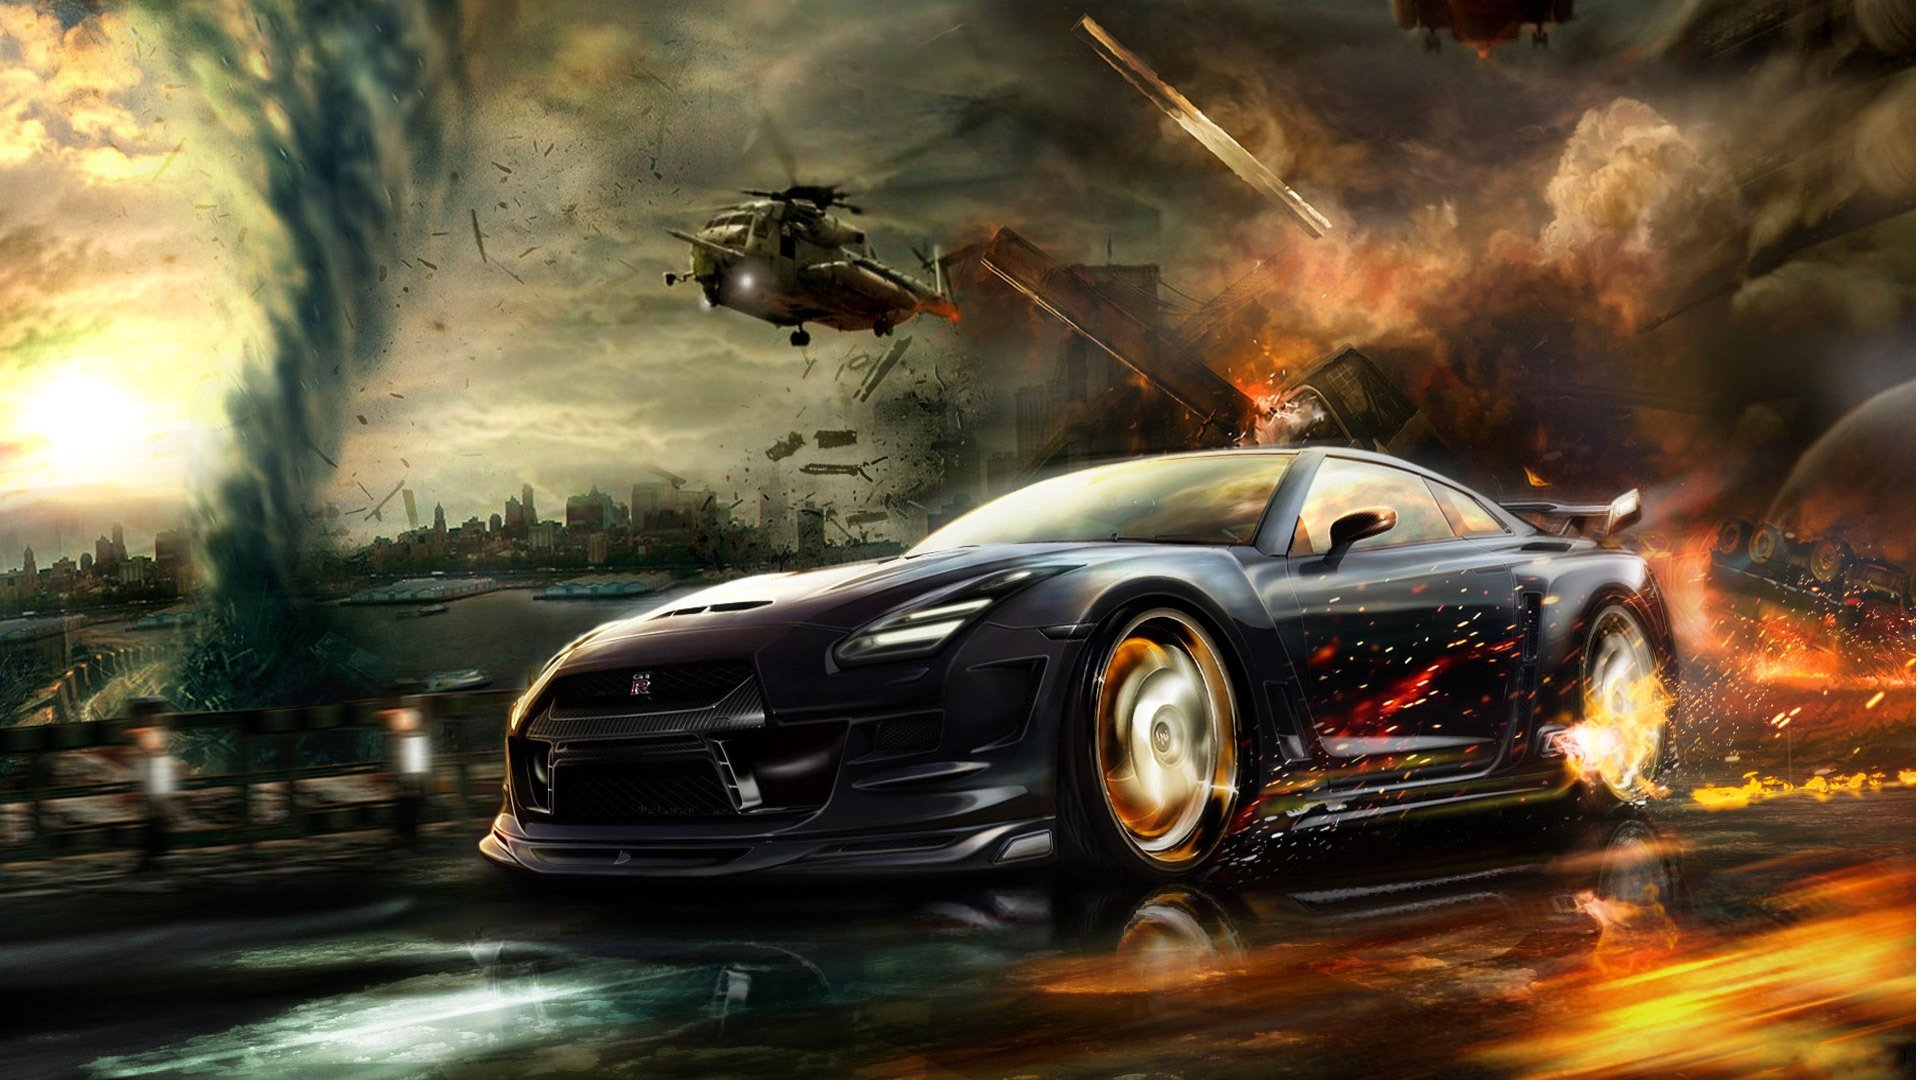 Sports Car fire Backgrounds Wallpapers With Resolutions 19201080 1920x1080